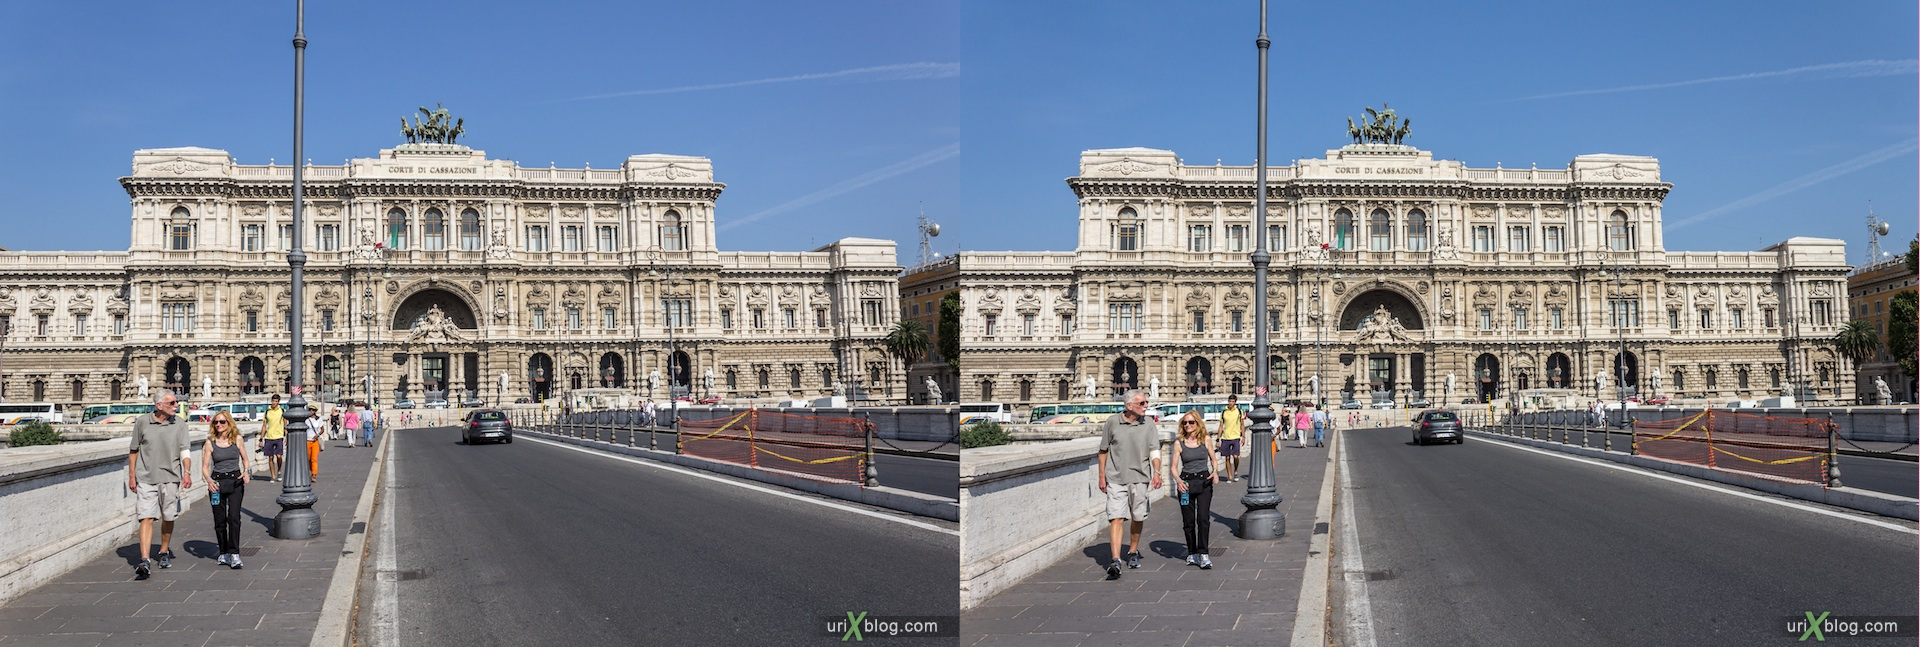 2012, Supreme Court of Cassation of Italy, ponte Umberto I bridge, 3D, stereo pair, cross-eyed, crossview, cross view stereo pair